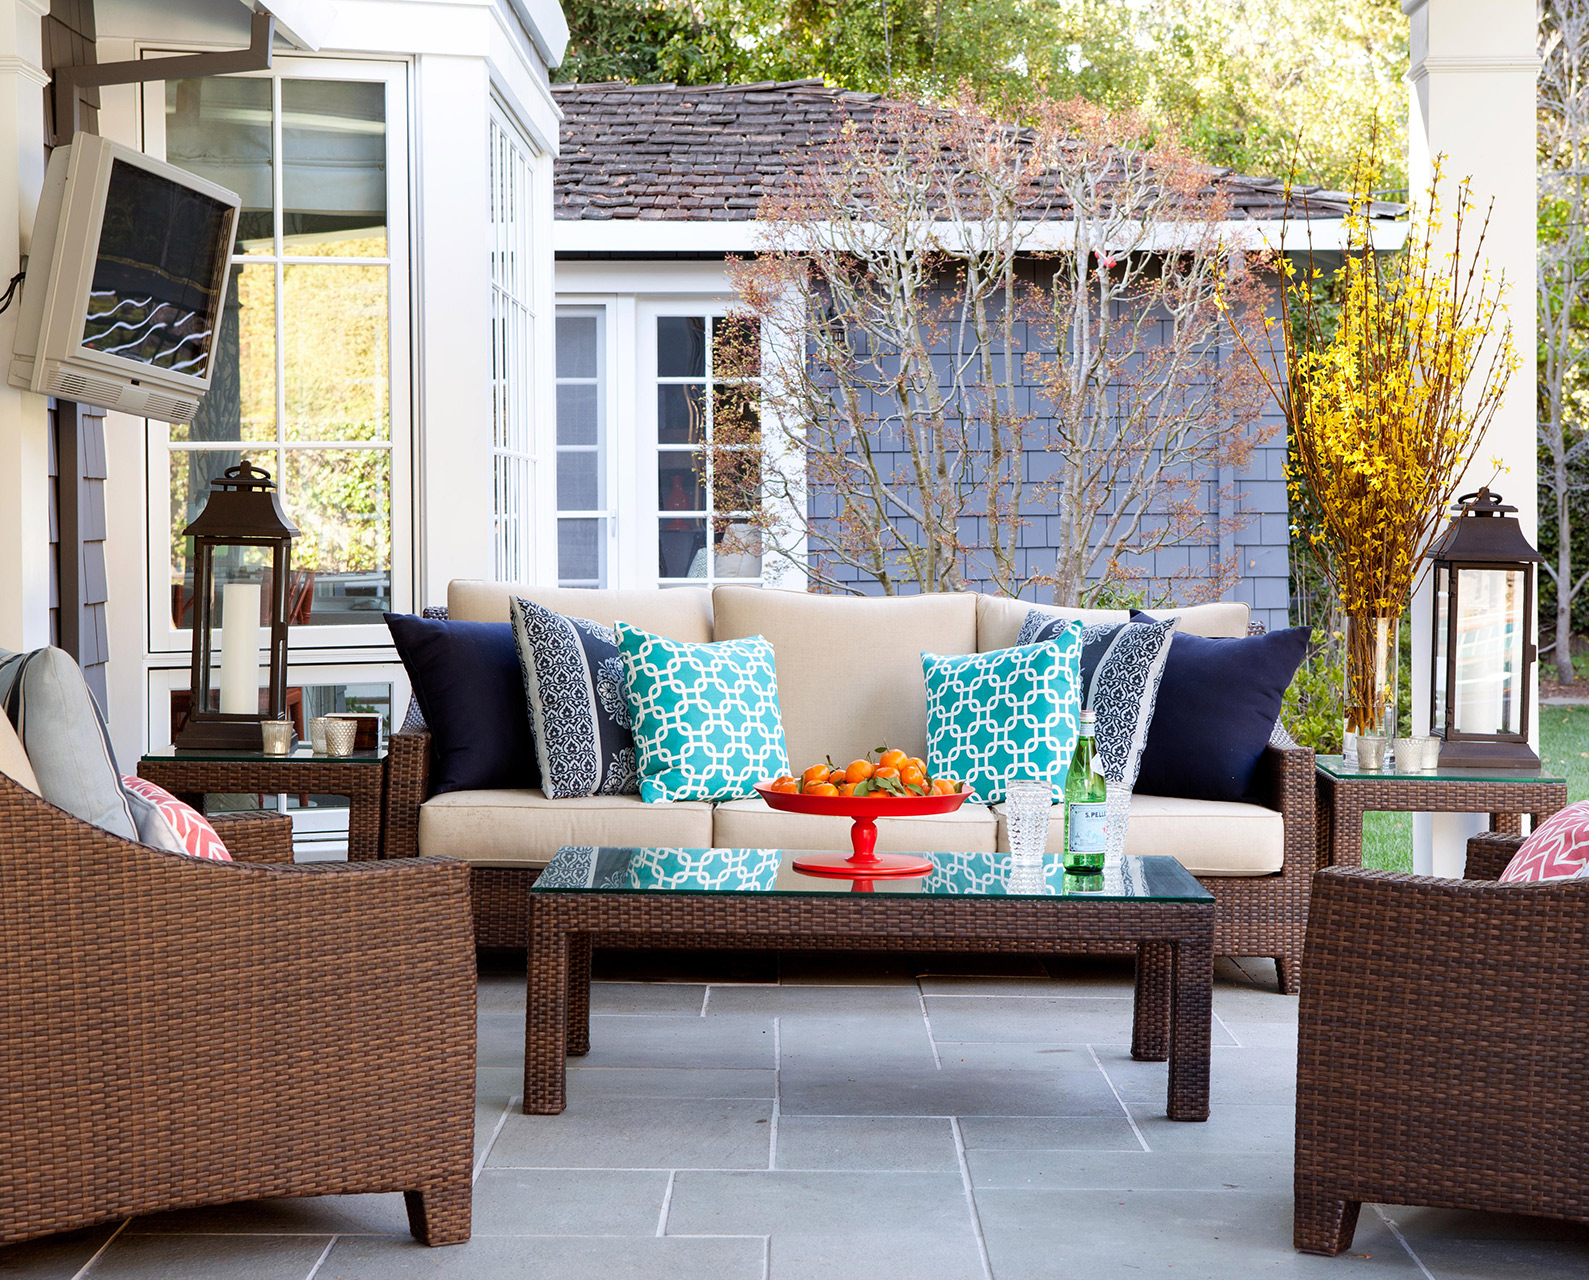 outdoor patio with stone flooring and rattan furniture